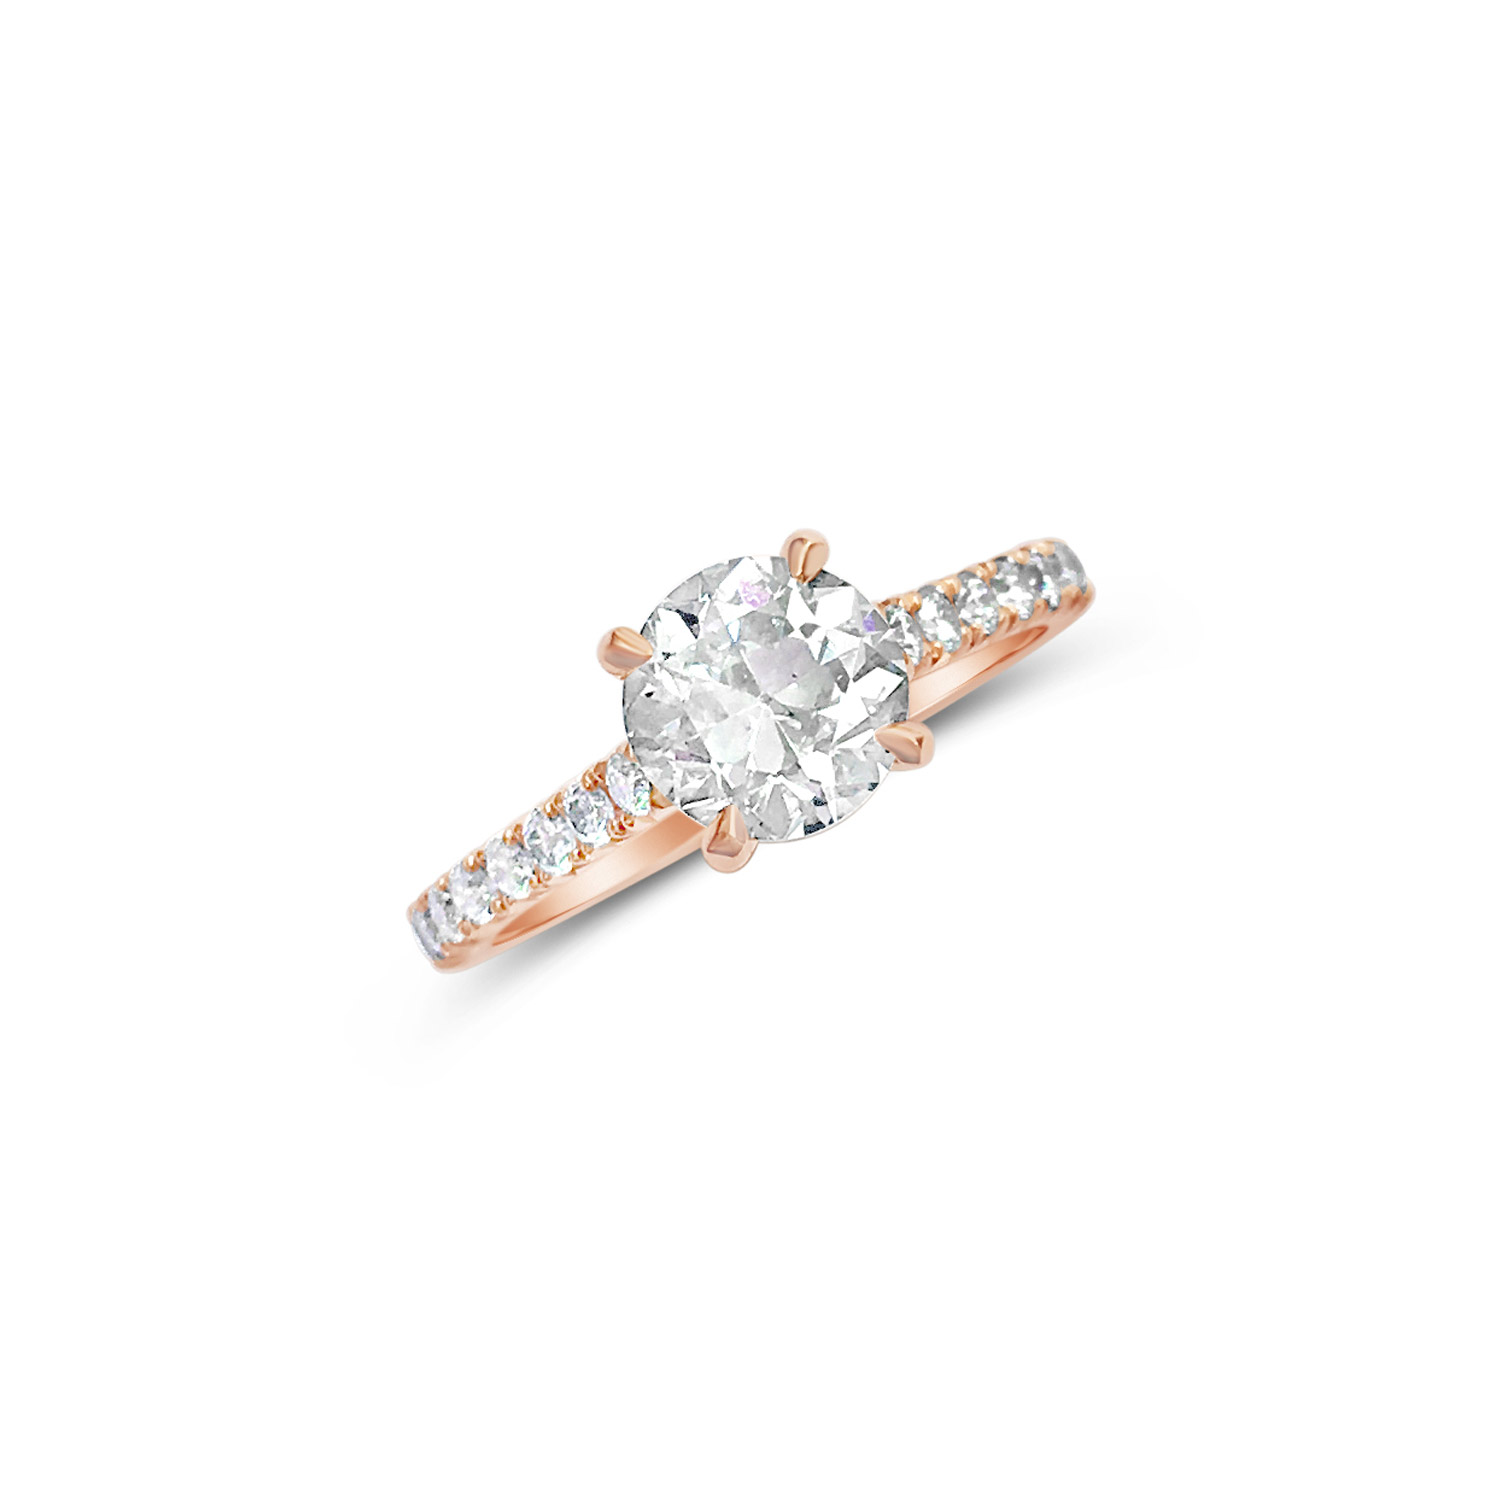 Diamond and rose gold solitaire ring